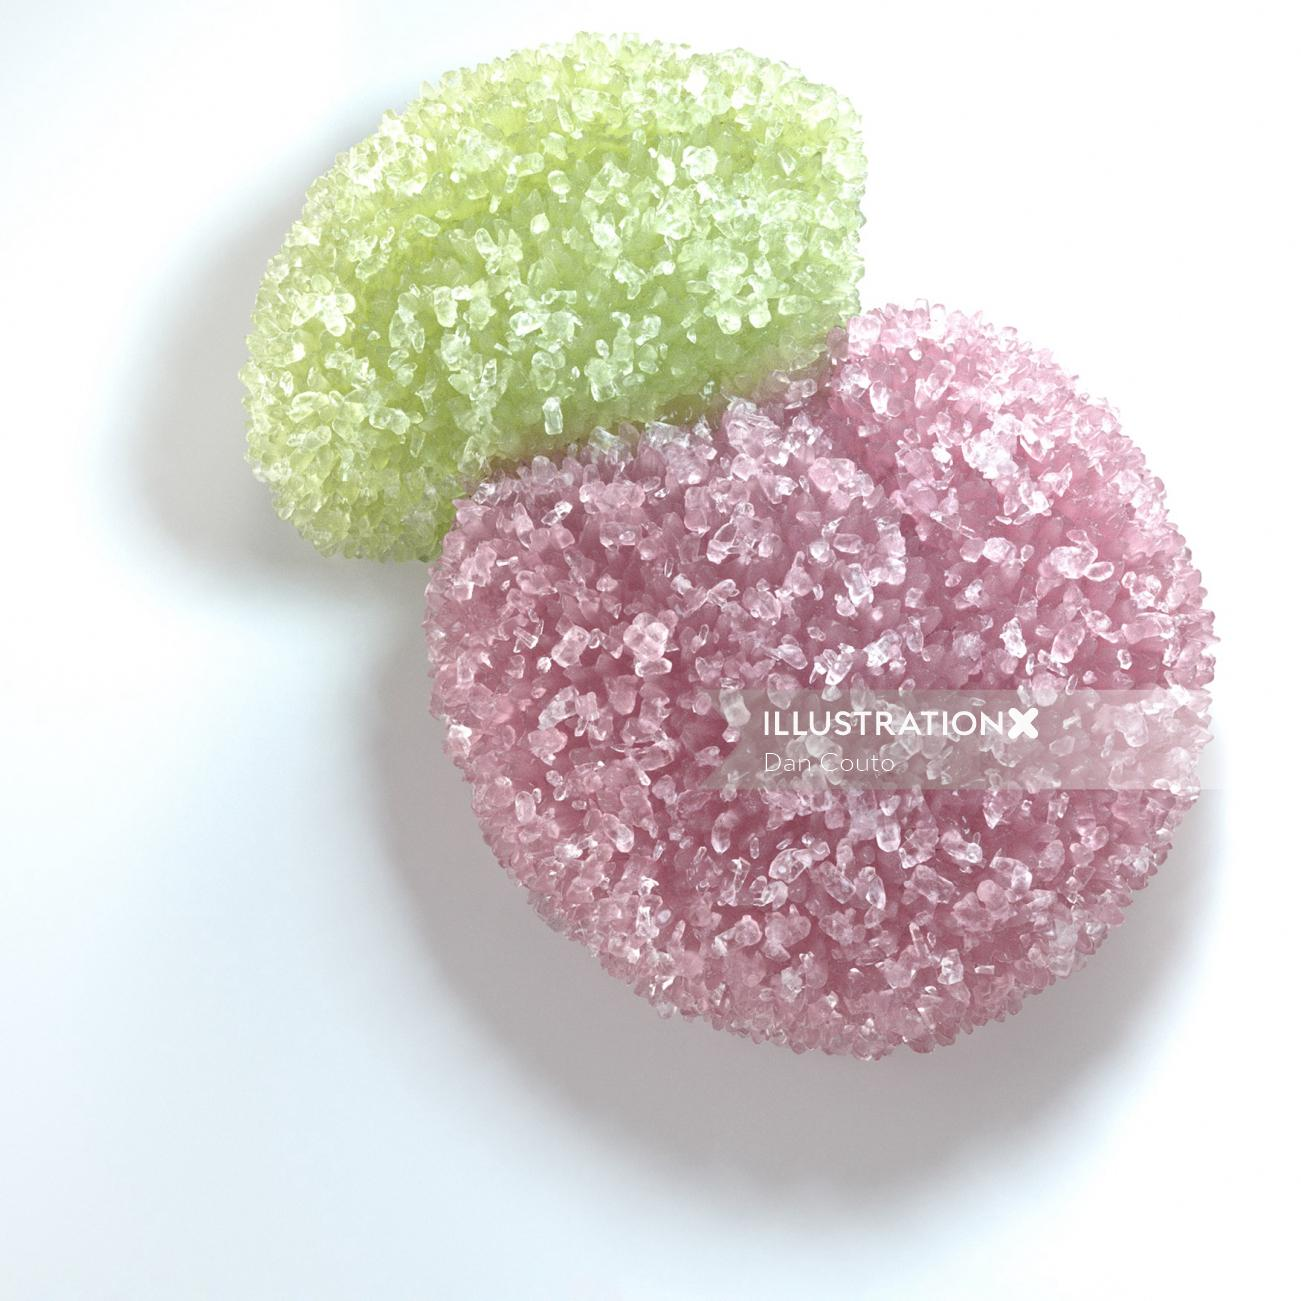 Photorealistic of cherry sour candy